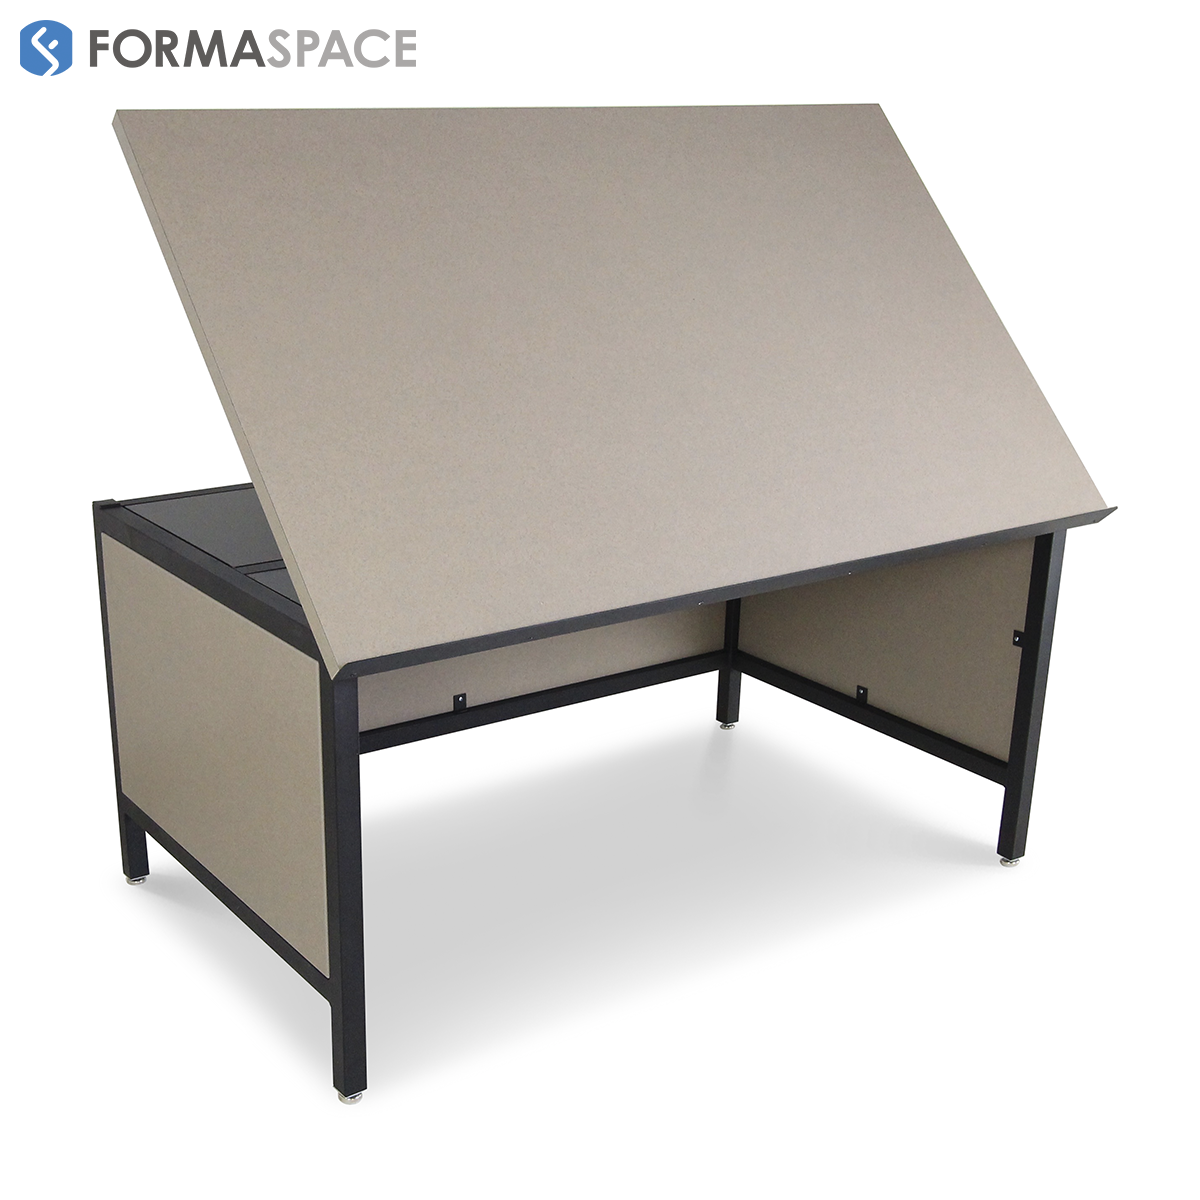 Drafting table with Modesty Panels